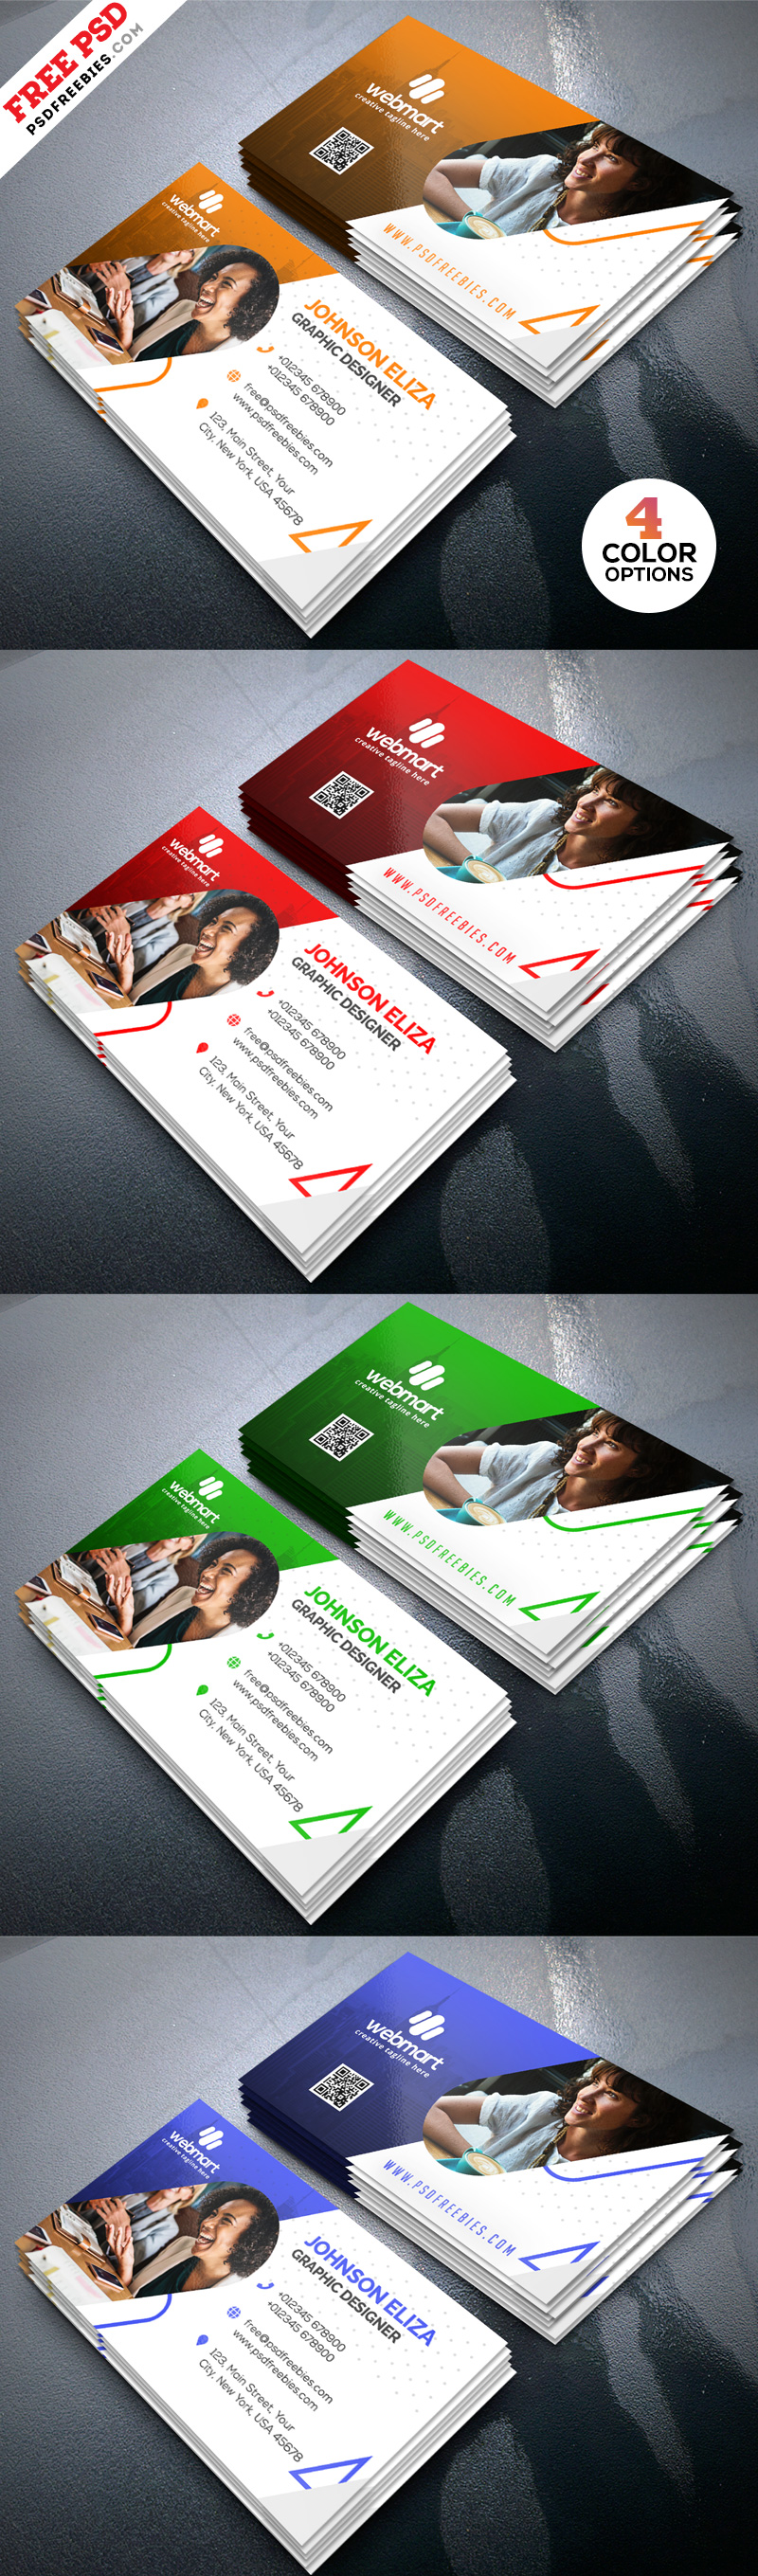 Modern Business Card Design Templates PSD